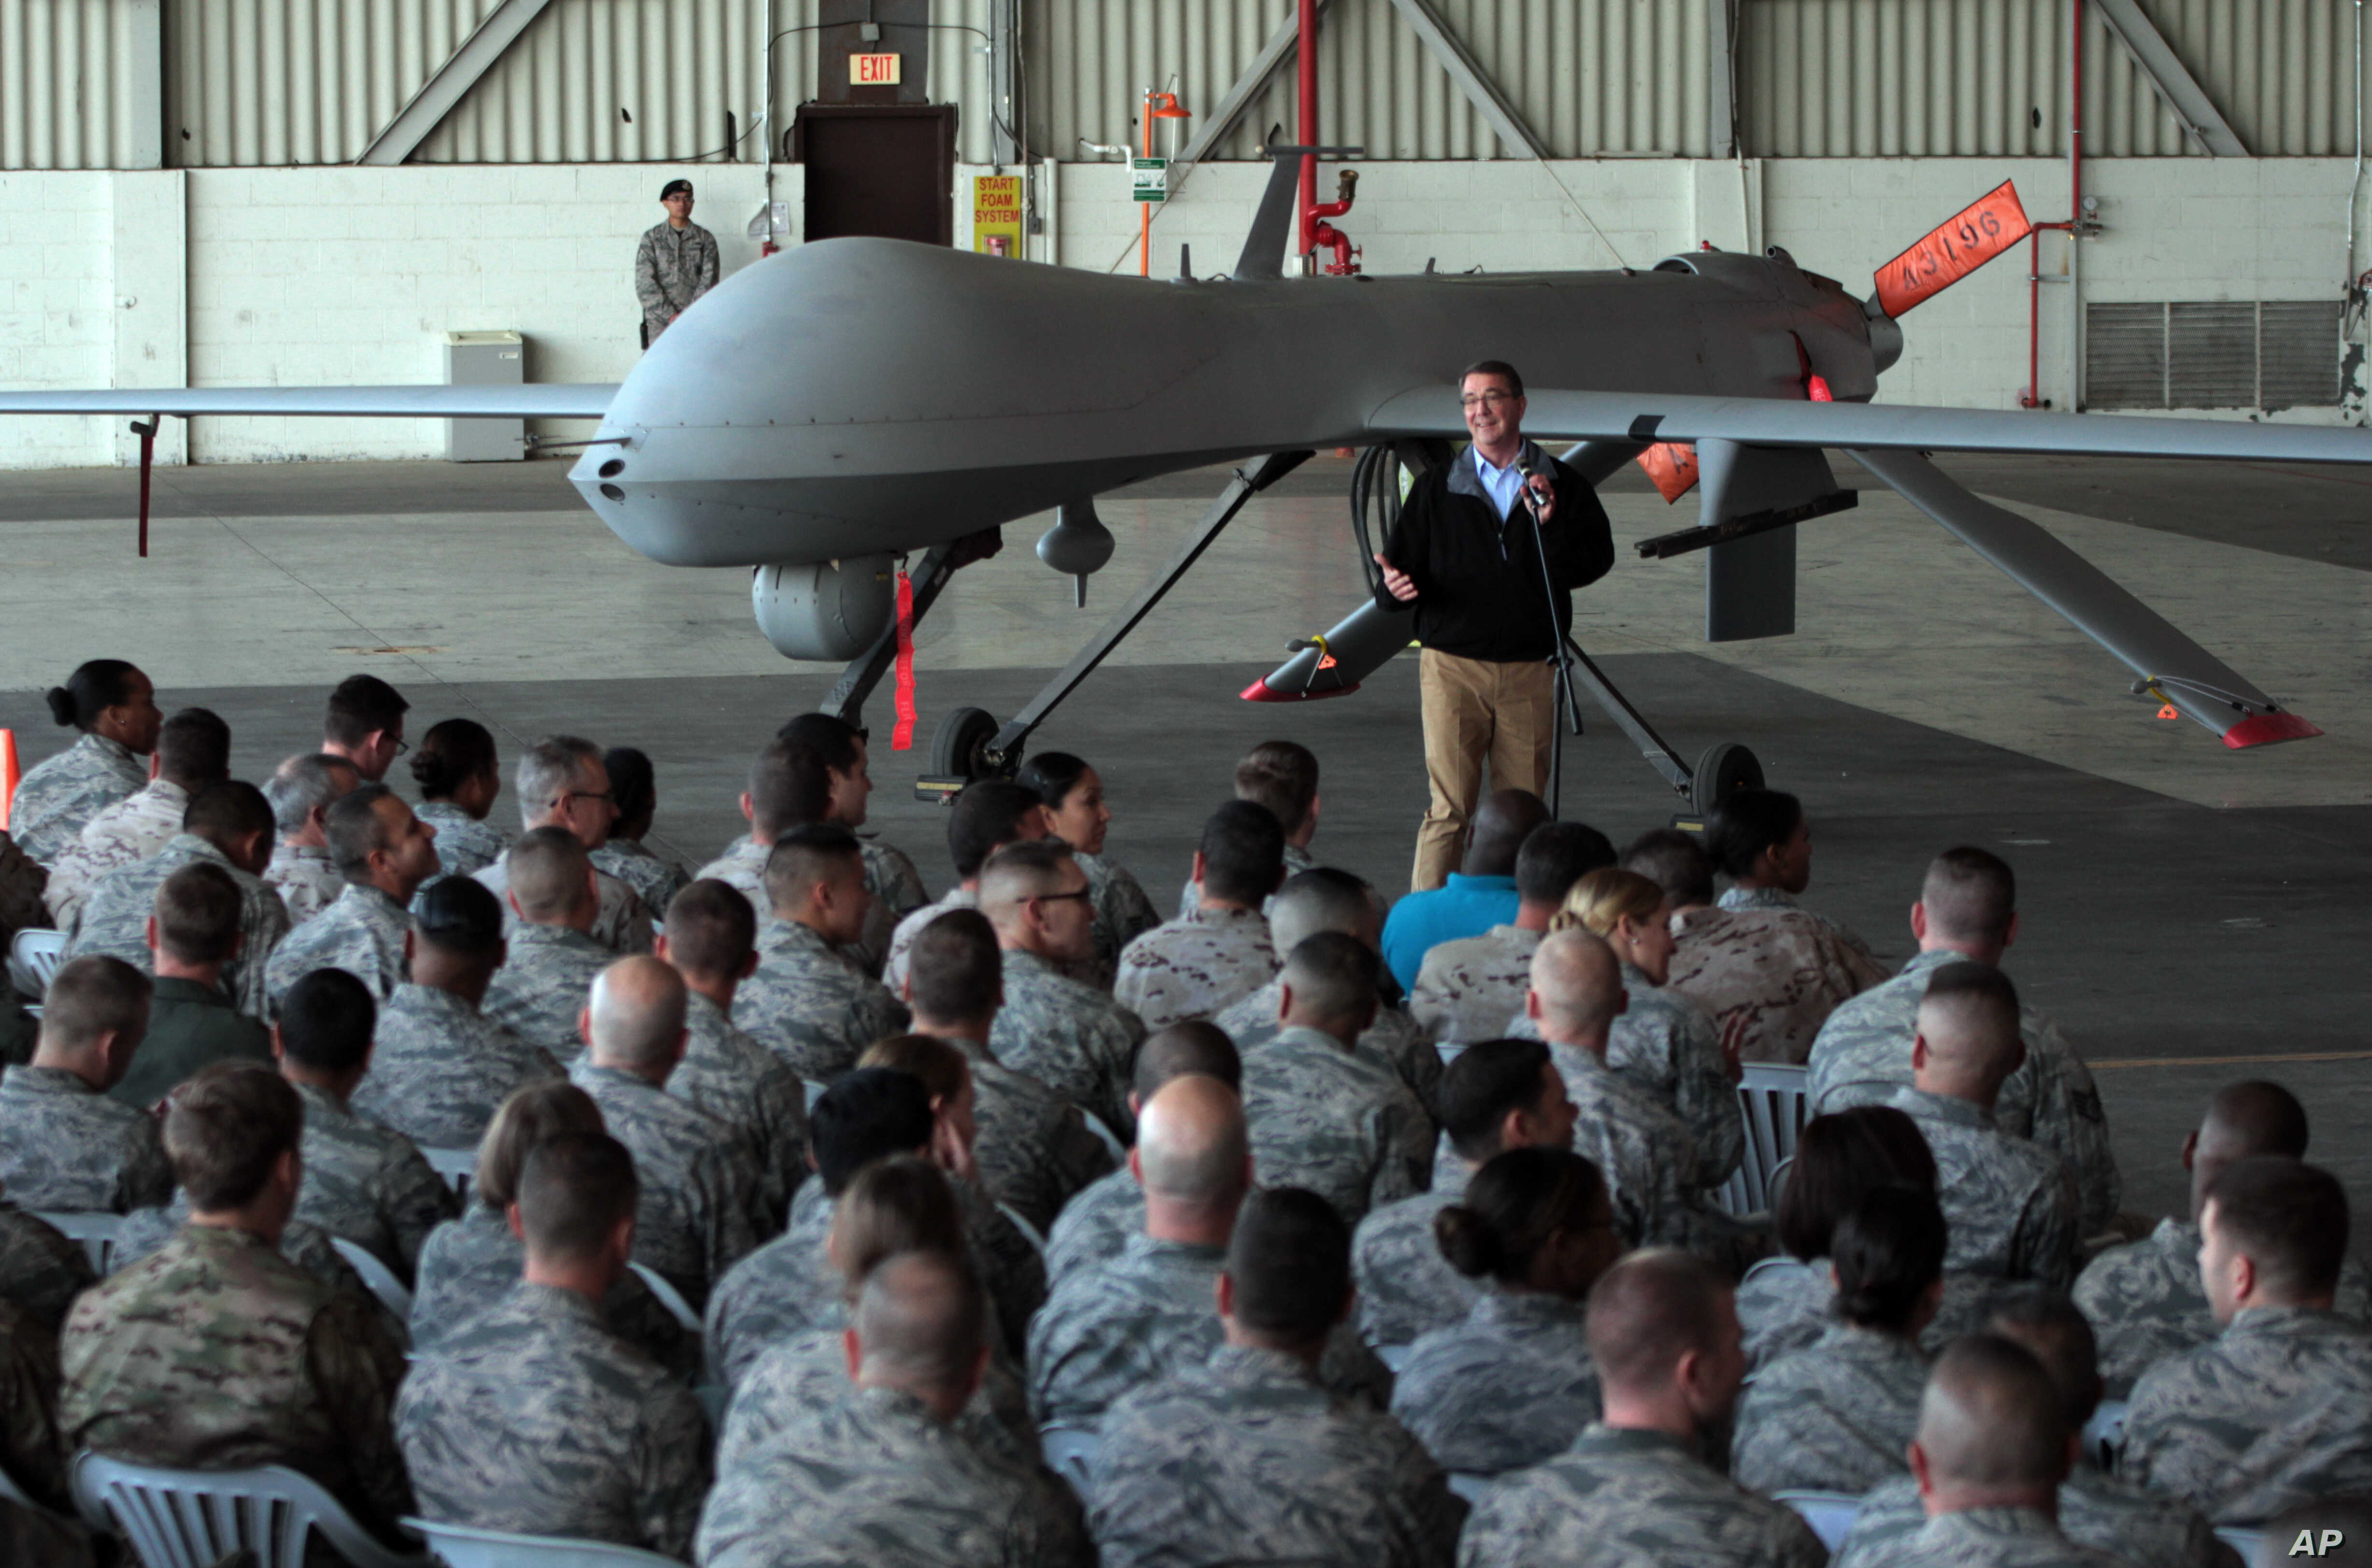 U. S. Defense Secretary Ash Carter addresses the U.S. troops as he stands in front of a drone at the Incirlik Air Base near Adana, Turkey, Dec. 15, 2015.